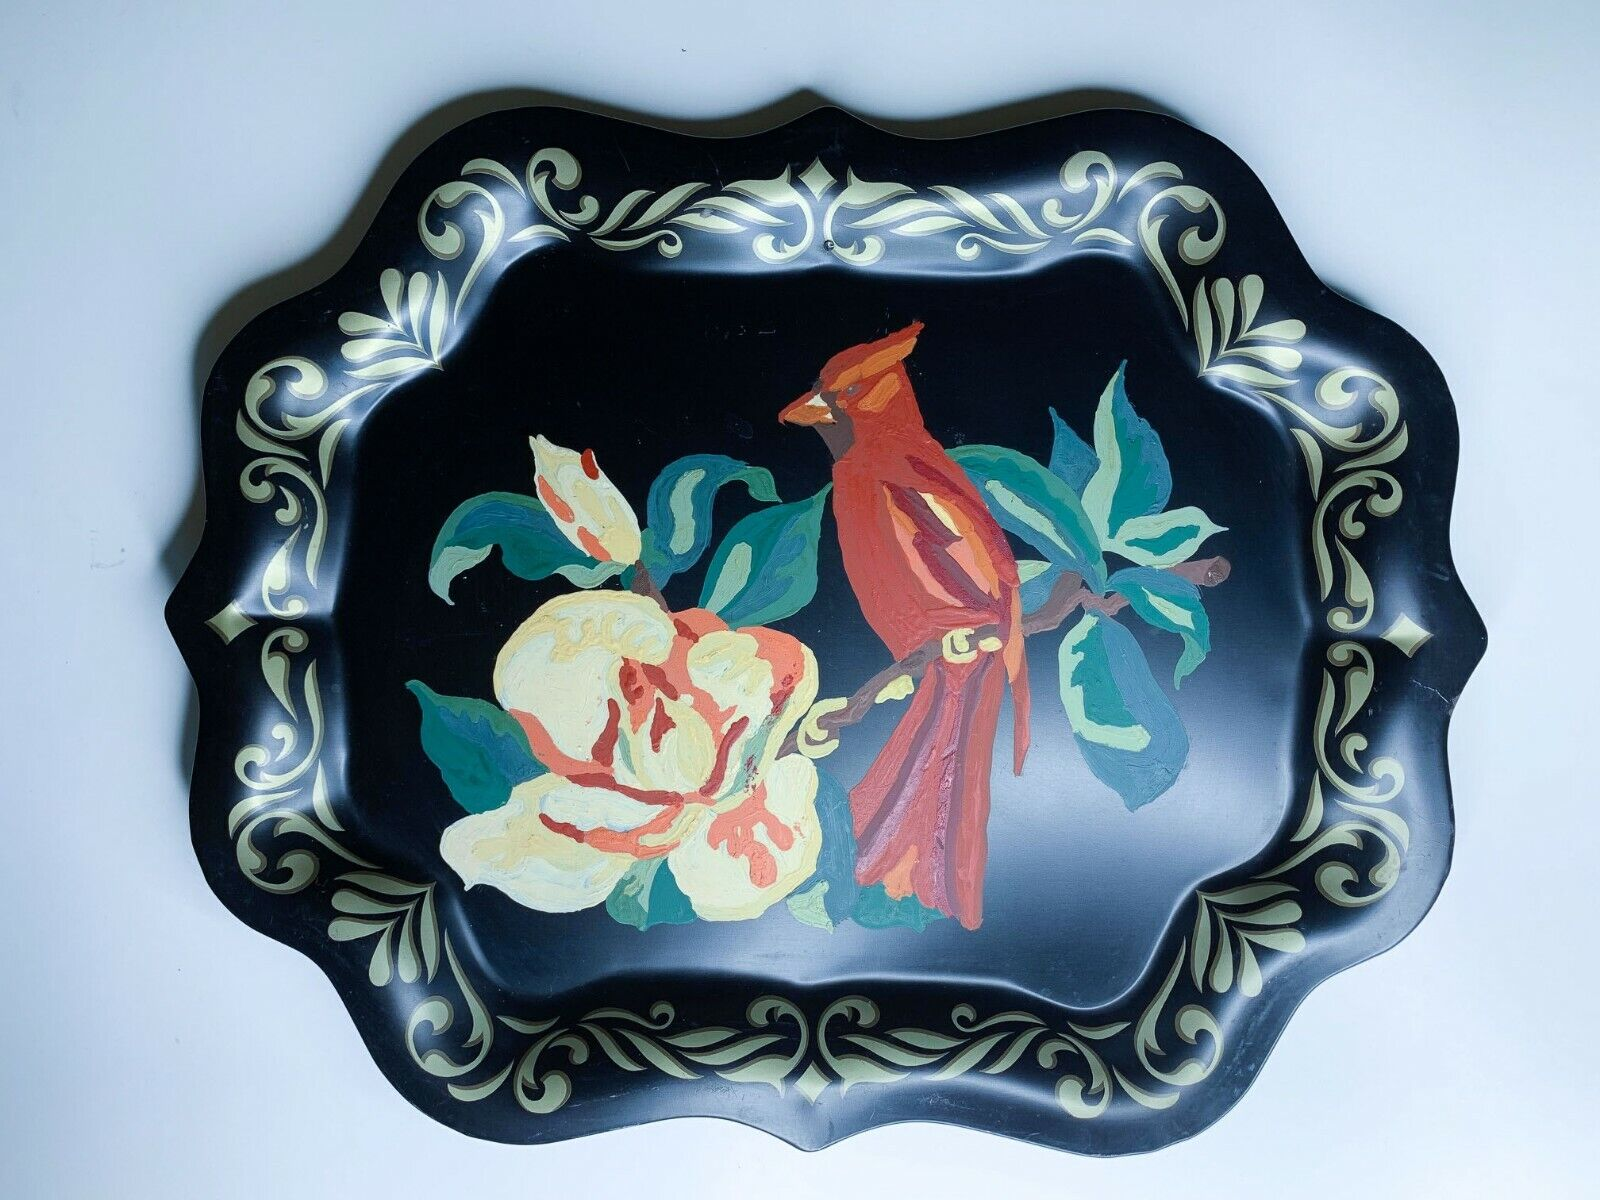 Vintage Cardinal Tole Ware Tray 15x19 Hand Painted Hanging Art Decor Serving  - $35.00